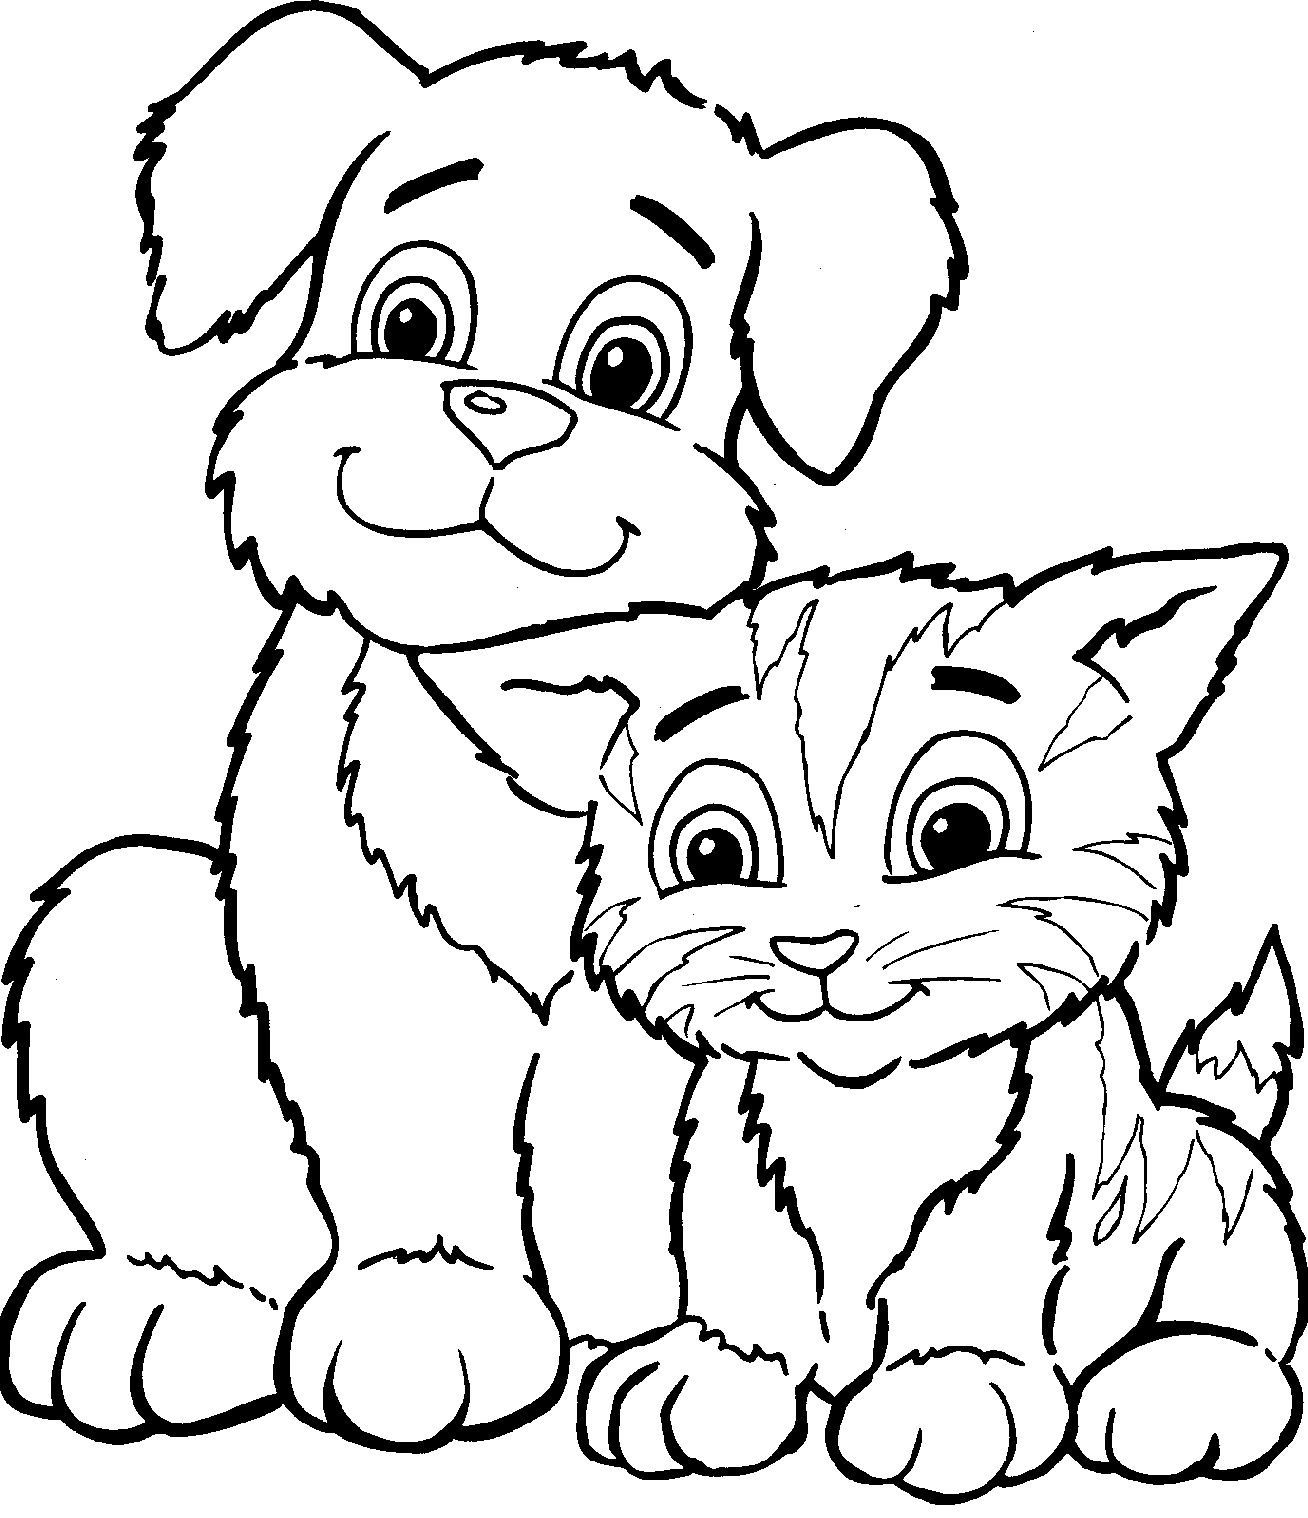 Puppies And Kittens Cute Coloring Pages | Kids | Pinterest